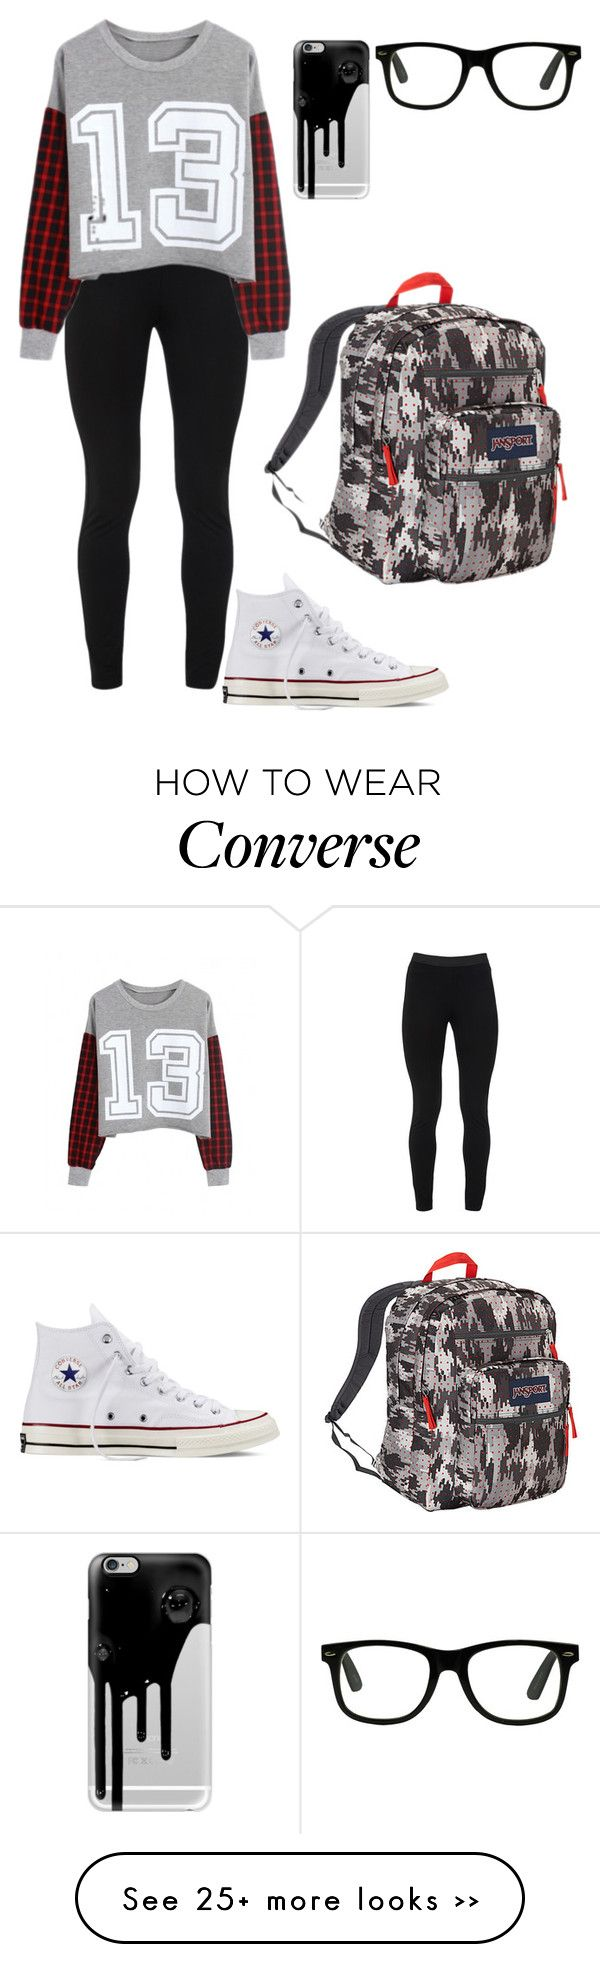 """""""Untitled #398"""" by meowliv on Polyvore featuring Peace of Cloth, Converse, JanSport and Casetify"""